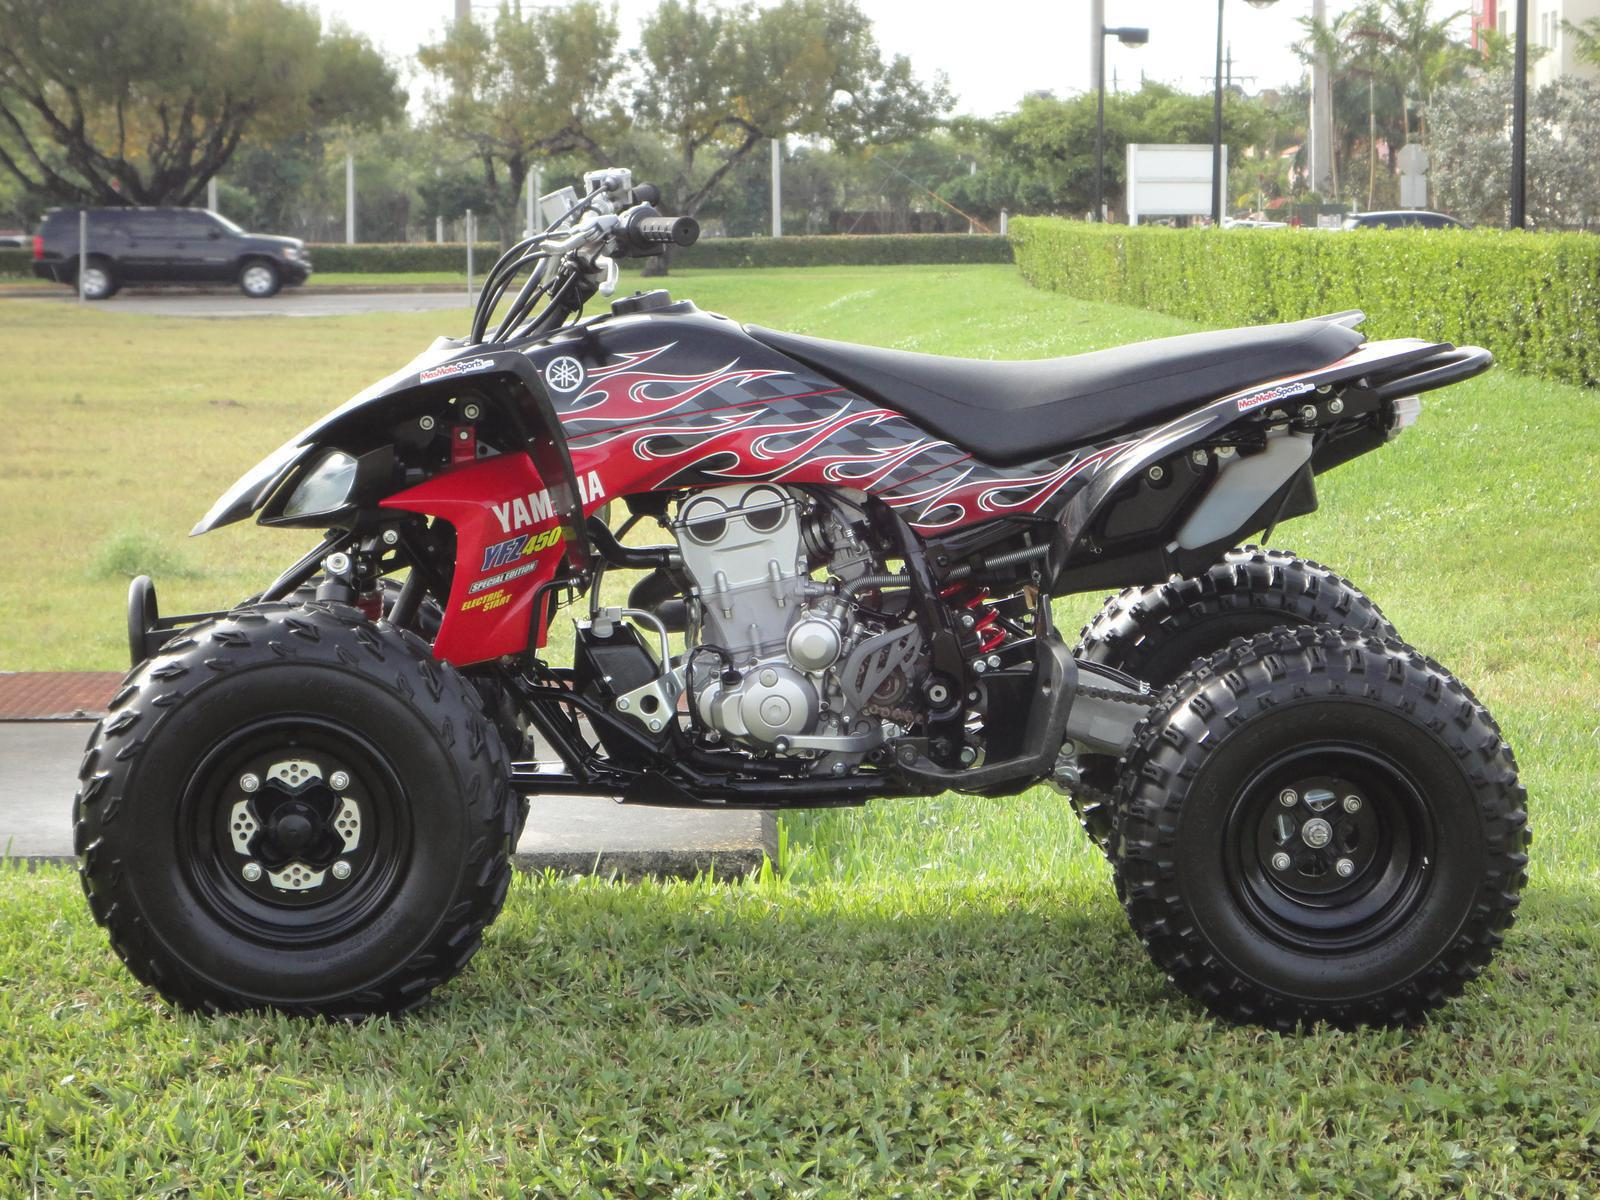 2012 yamaha yfz450 for sale in miami fl masmotosports 305 994 9494